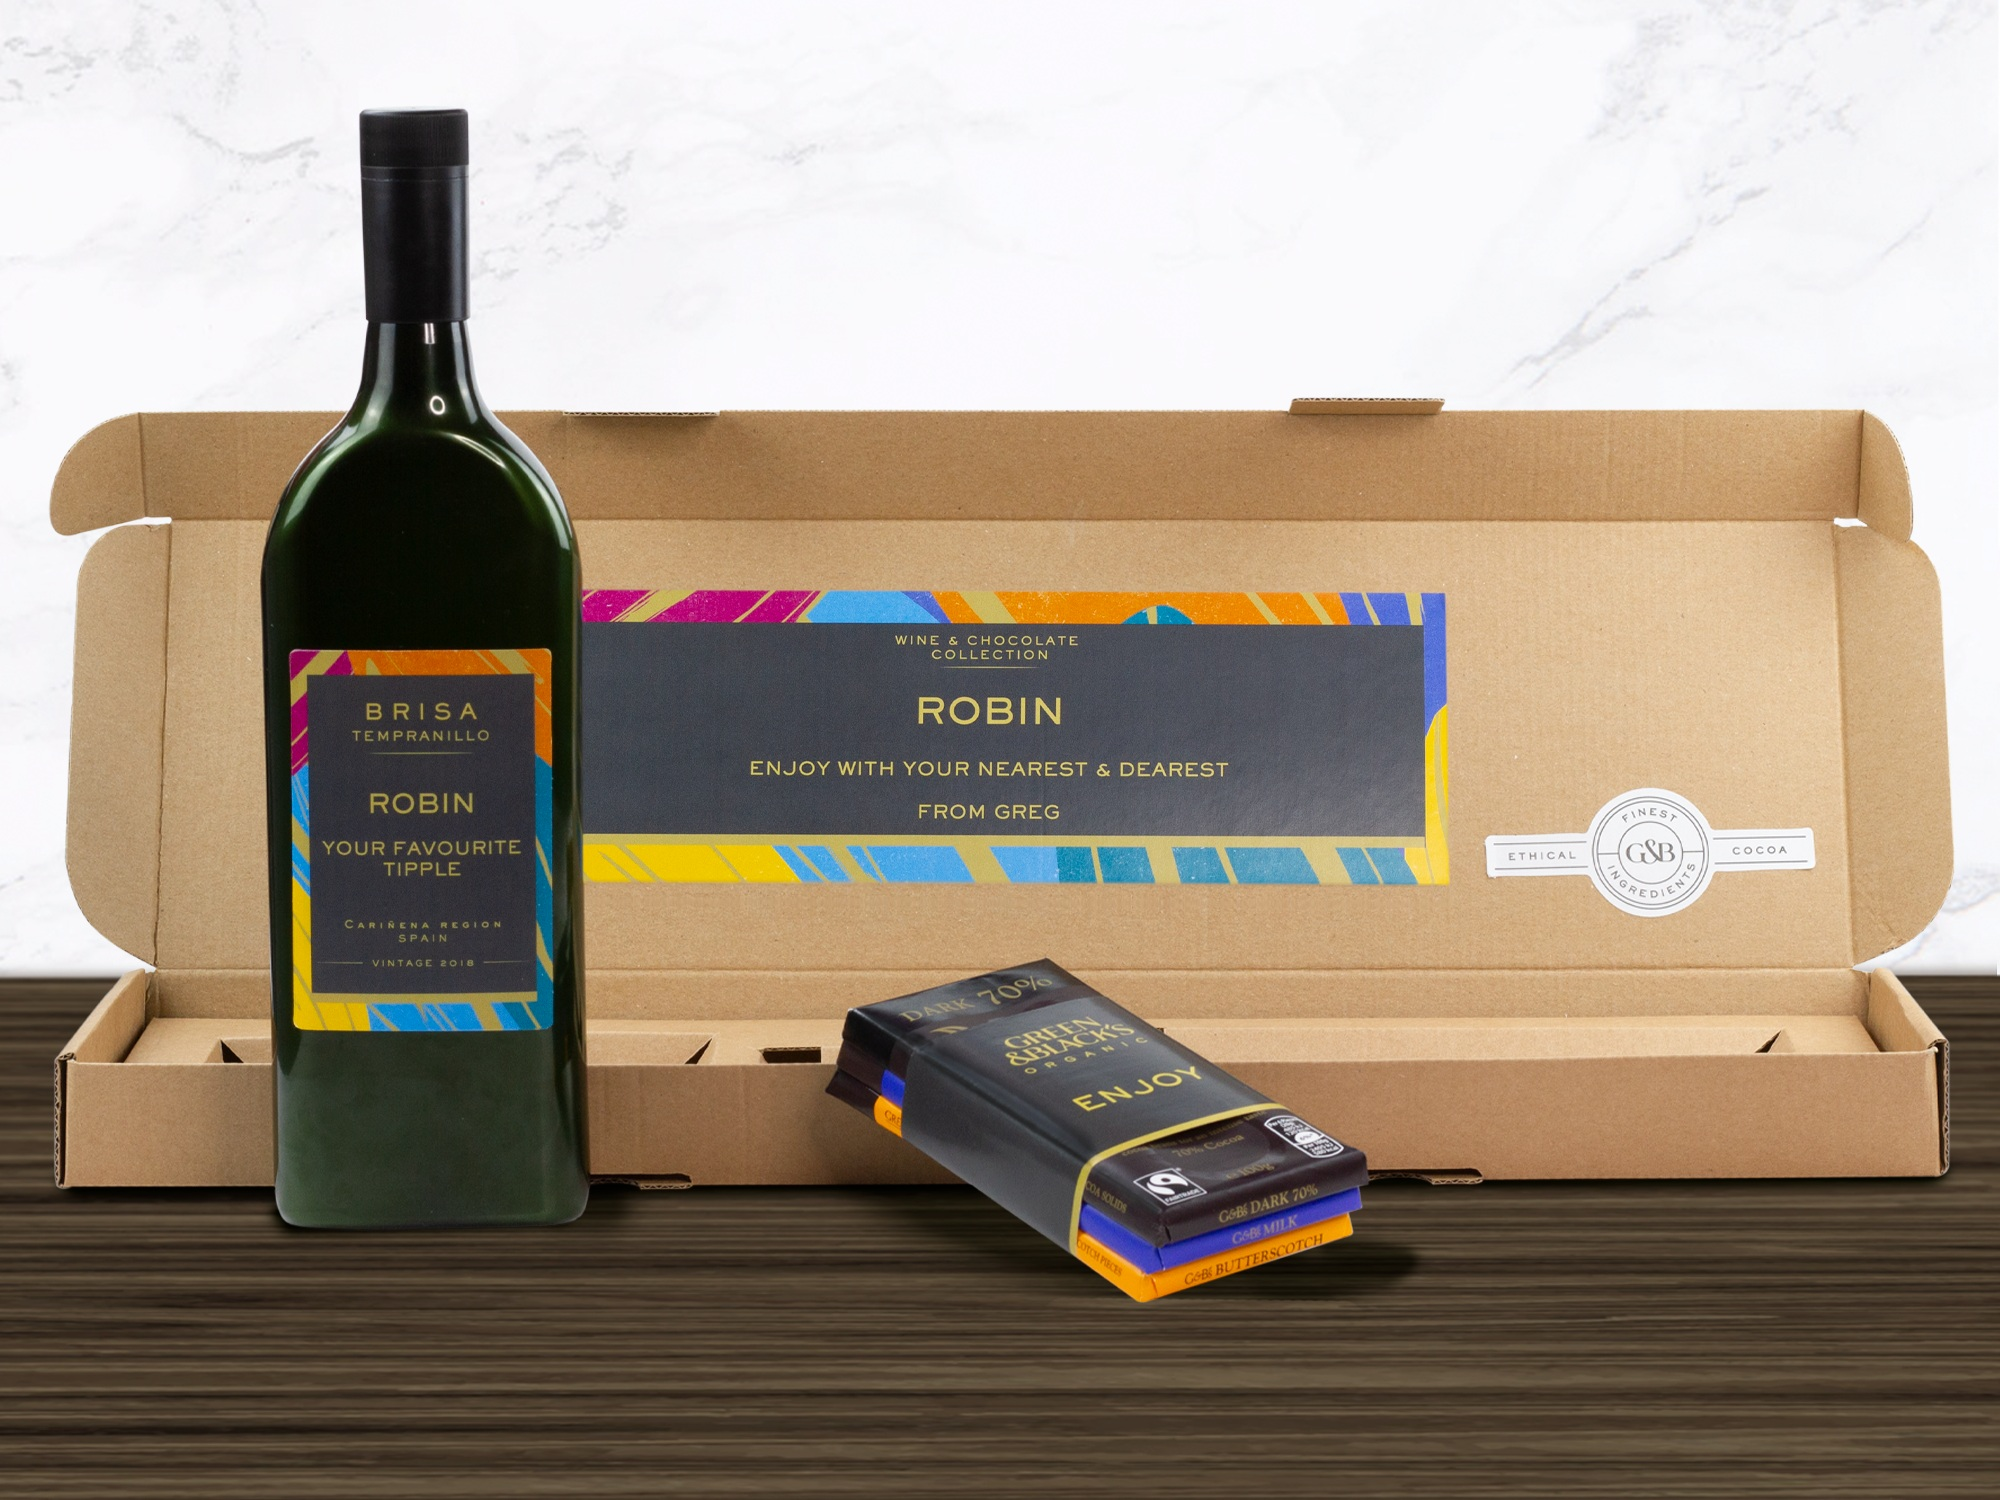 Mondelēz with Emagination Store  - We are collaborating with personalised gifting company Emagination Store, to offer bespoke indulgence gifts with brands from renowned multinational confectionery company, Mondelēz.